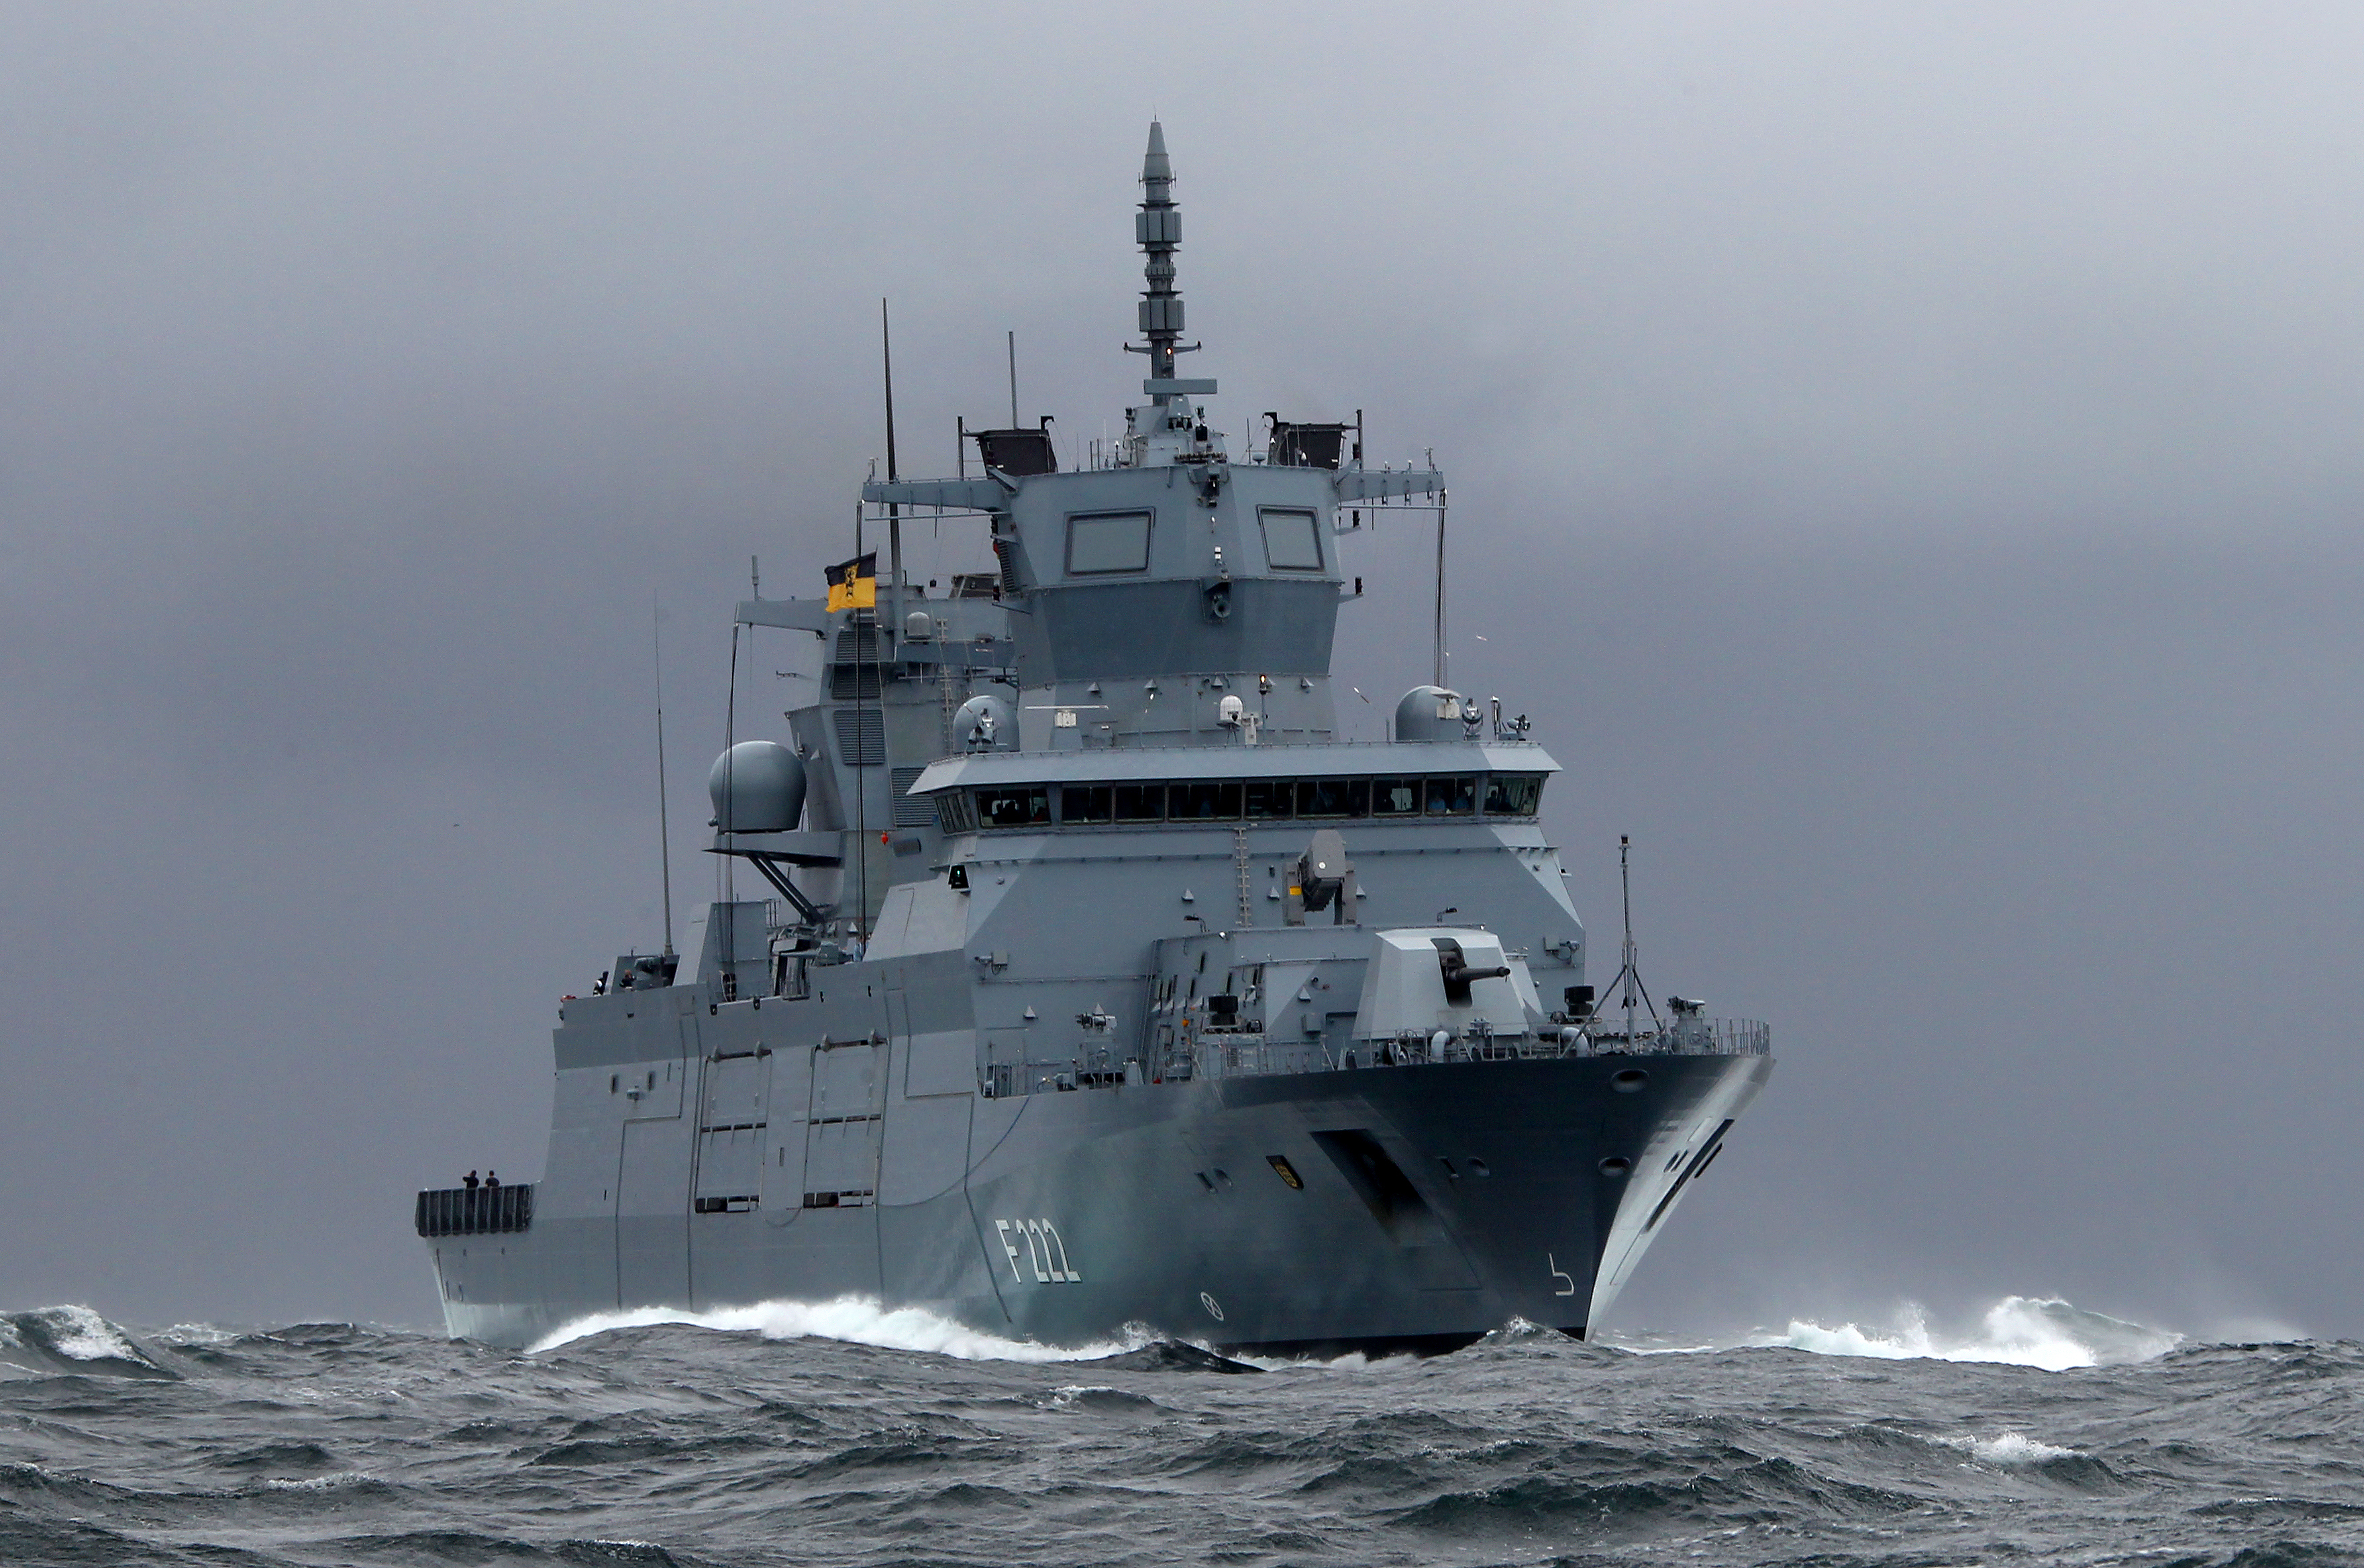 the German Navy's new 'Baden-Wüttemberg' class frigates